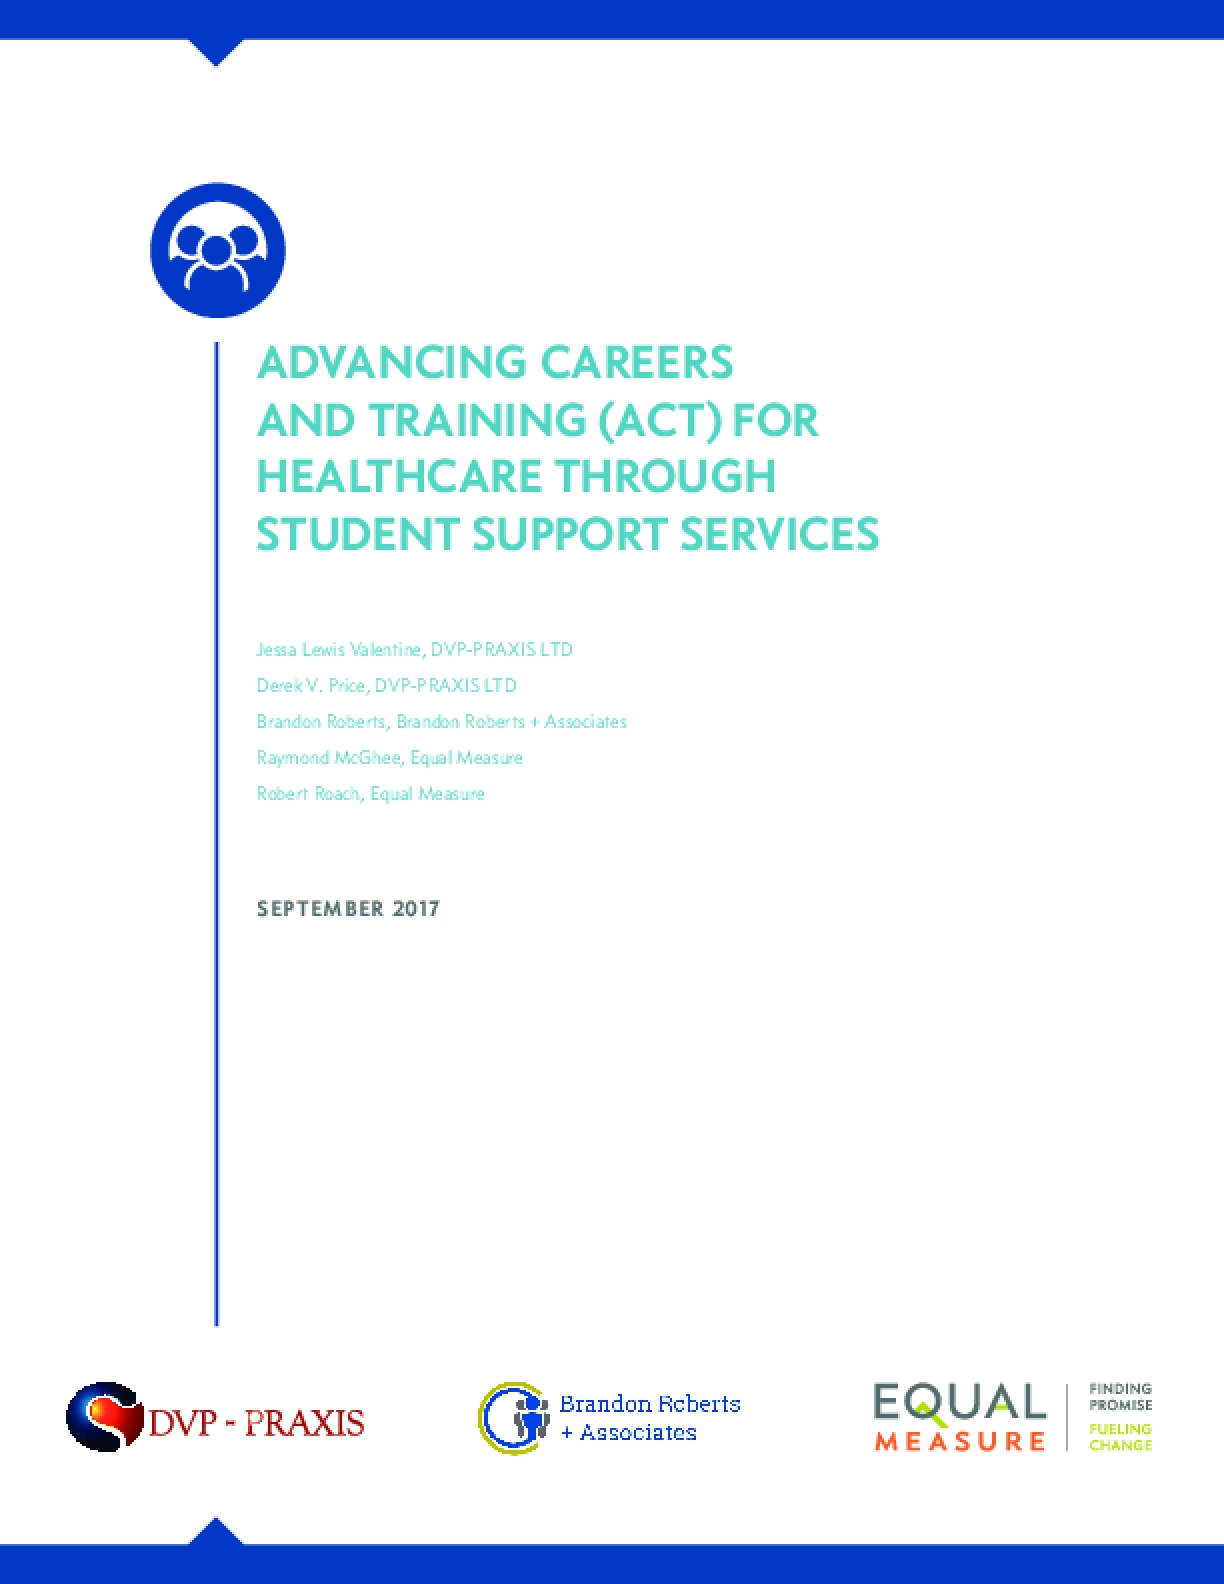 Advancing Careers and Training (ACT) for Healthcare Through Student Support Services